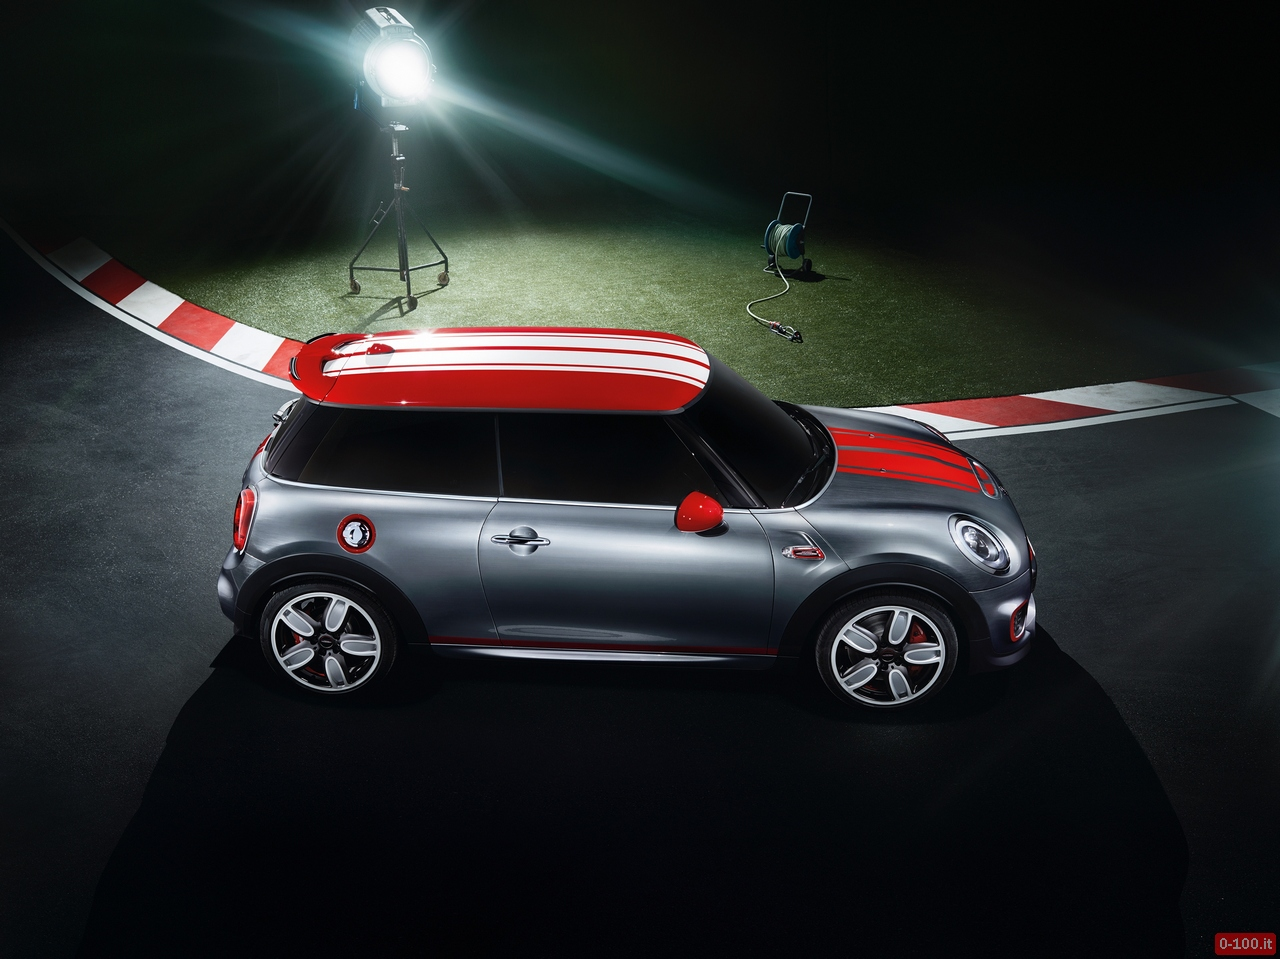 Salone-Detroit-NAIAS-2014-MINI-John-Cooper-Works-Concept_12